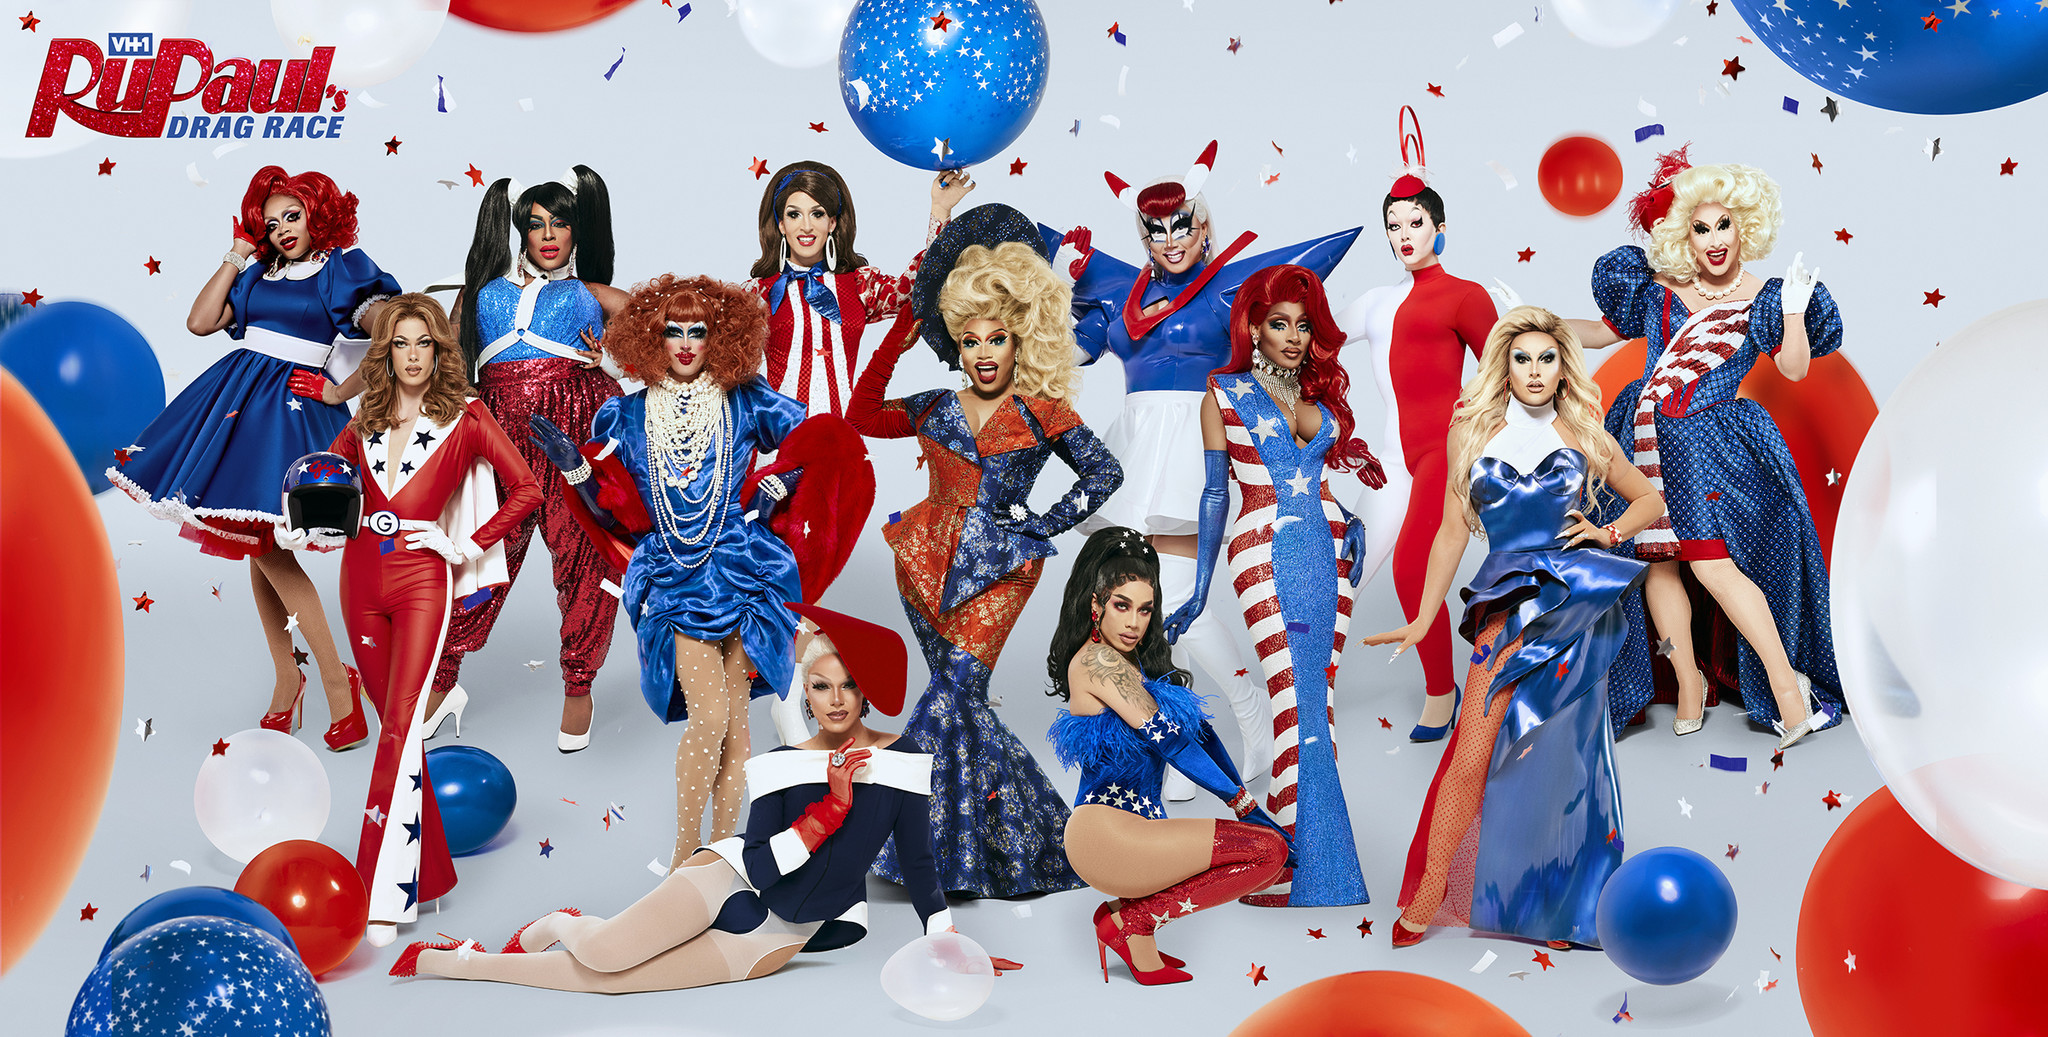 SEE IT: RuPaul announces new cast of queens for the 12th season of 'RuPaul's Drag Race'